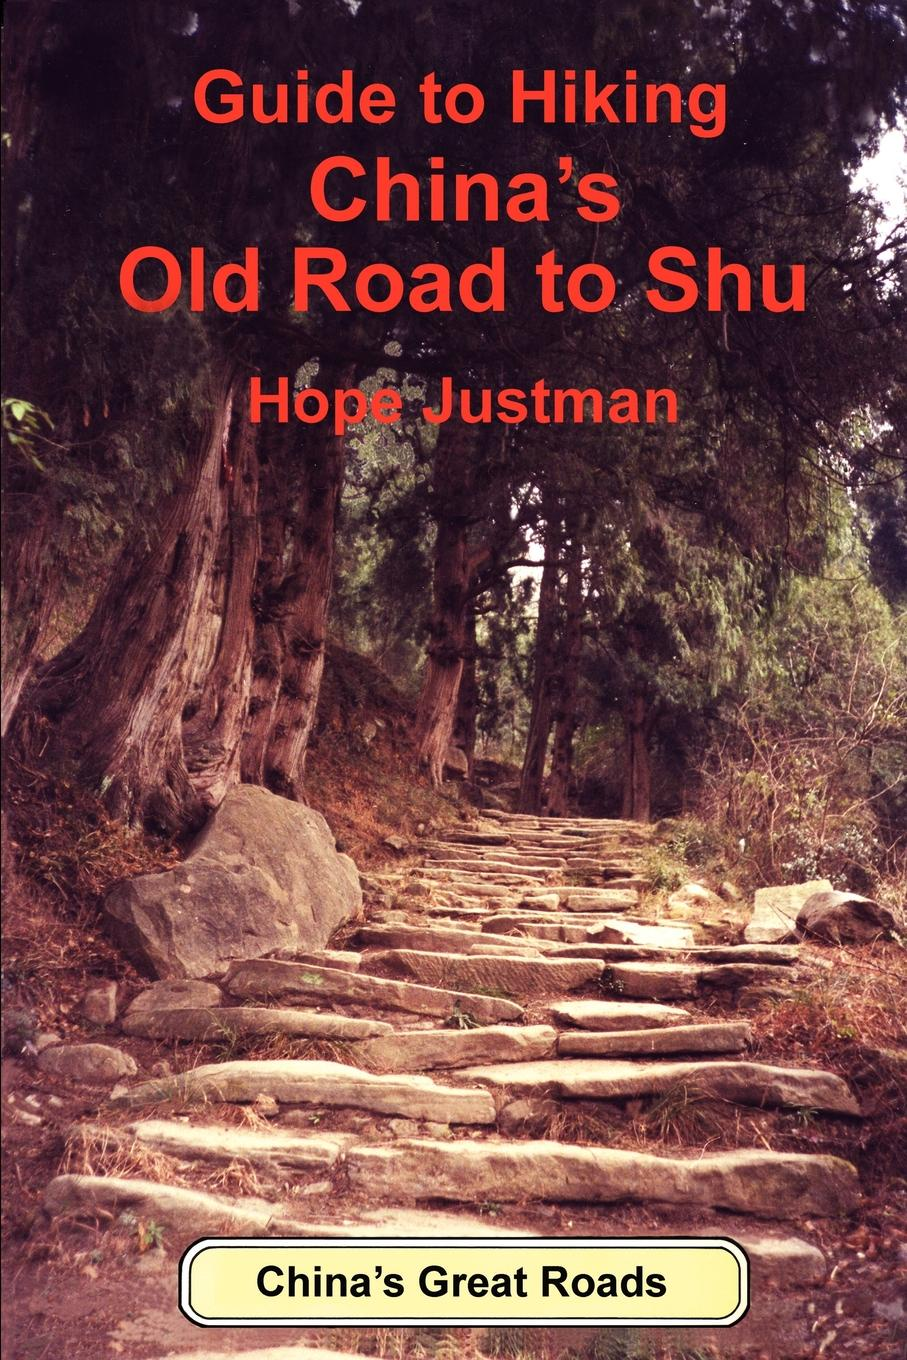 Hope Justman Guide to Hiking China's Old Road to Shu